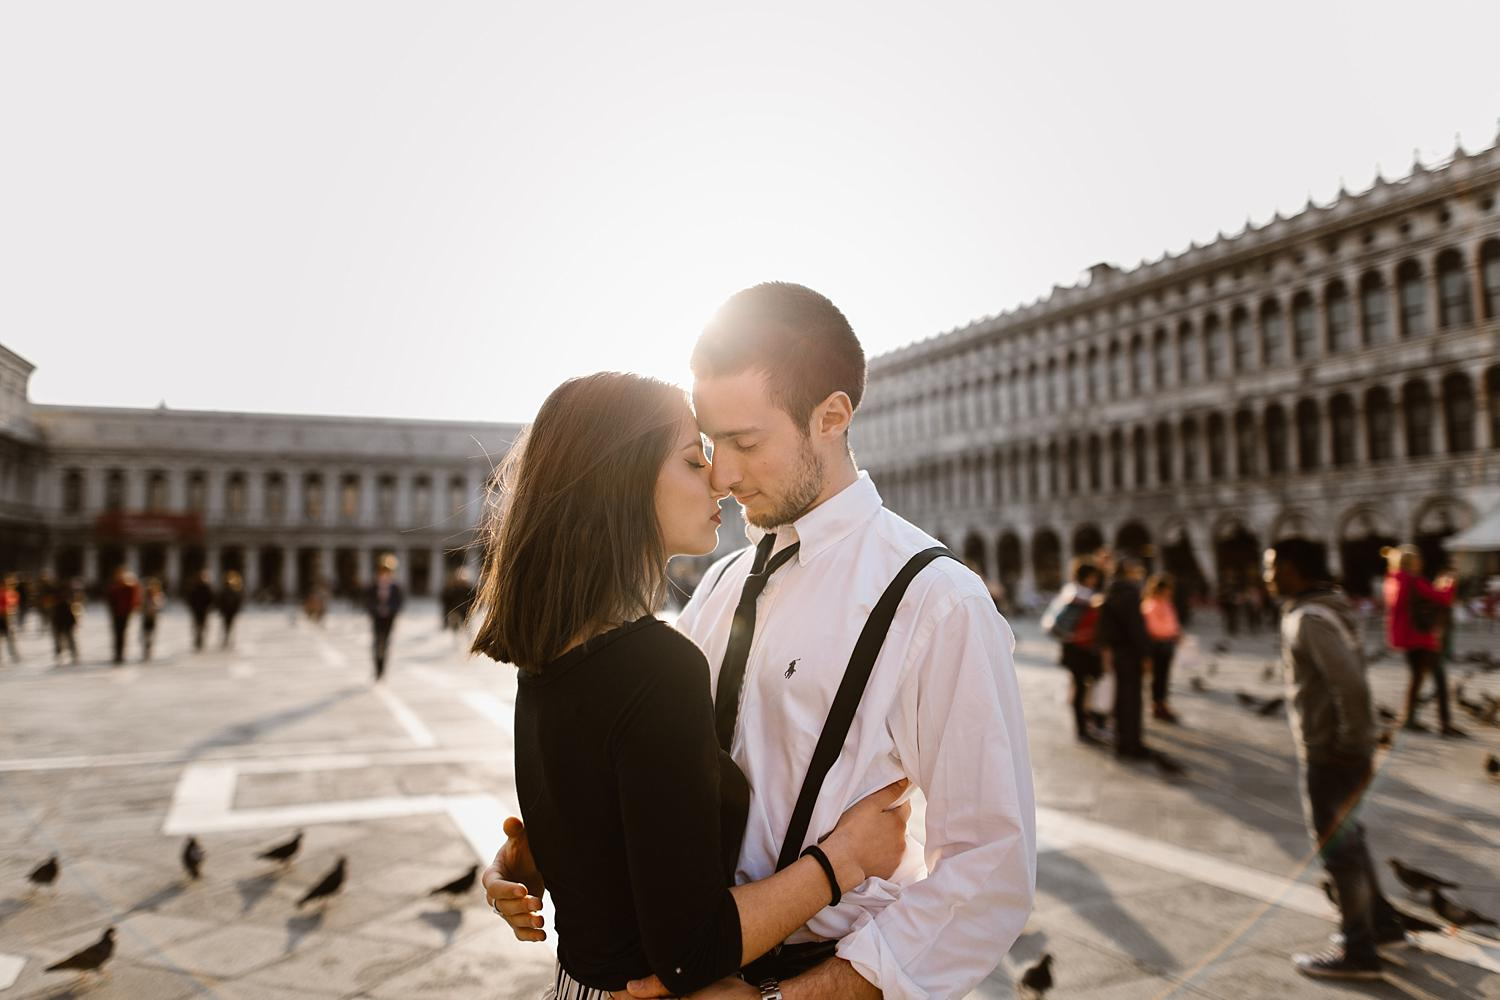 GL 75 - Giulia & Leonardo - An Intimate Shooting in Venice